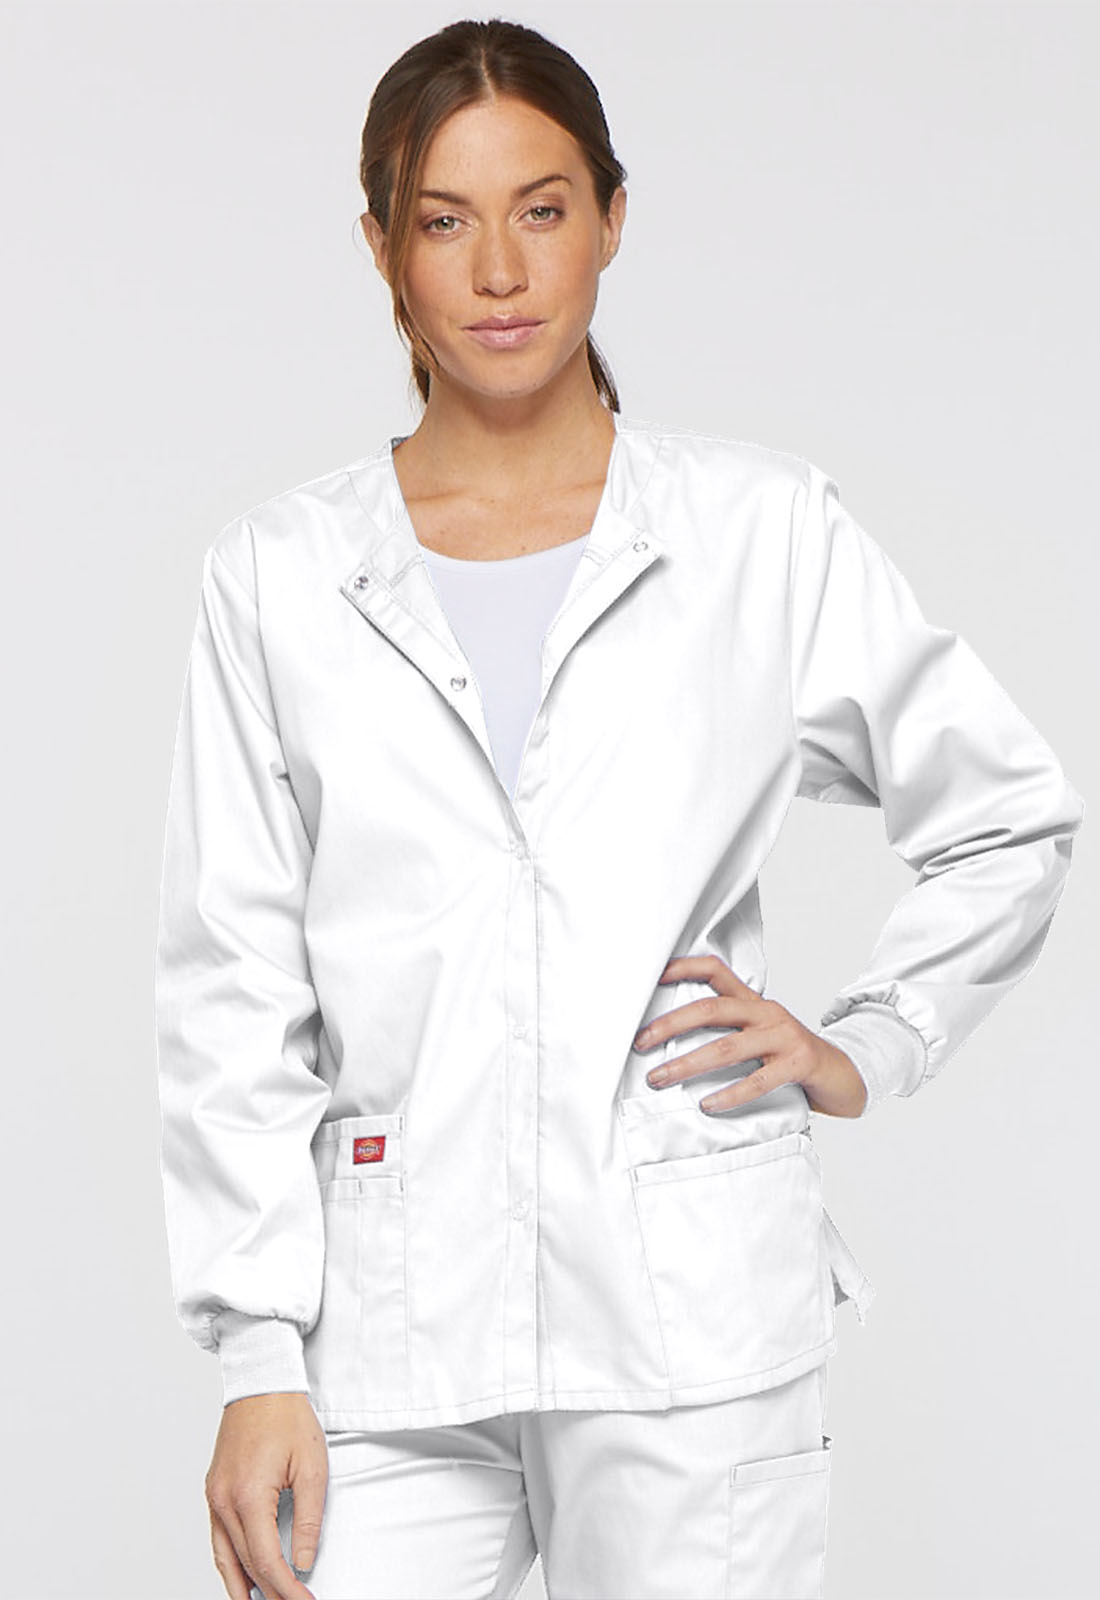 cc1deac99f279 EDS Signature Snap Front Warm-Up Jacket in White 86306-WHWZ from ...